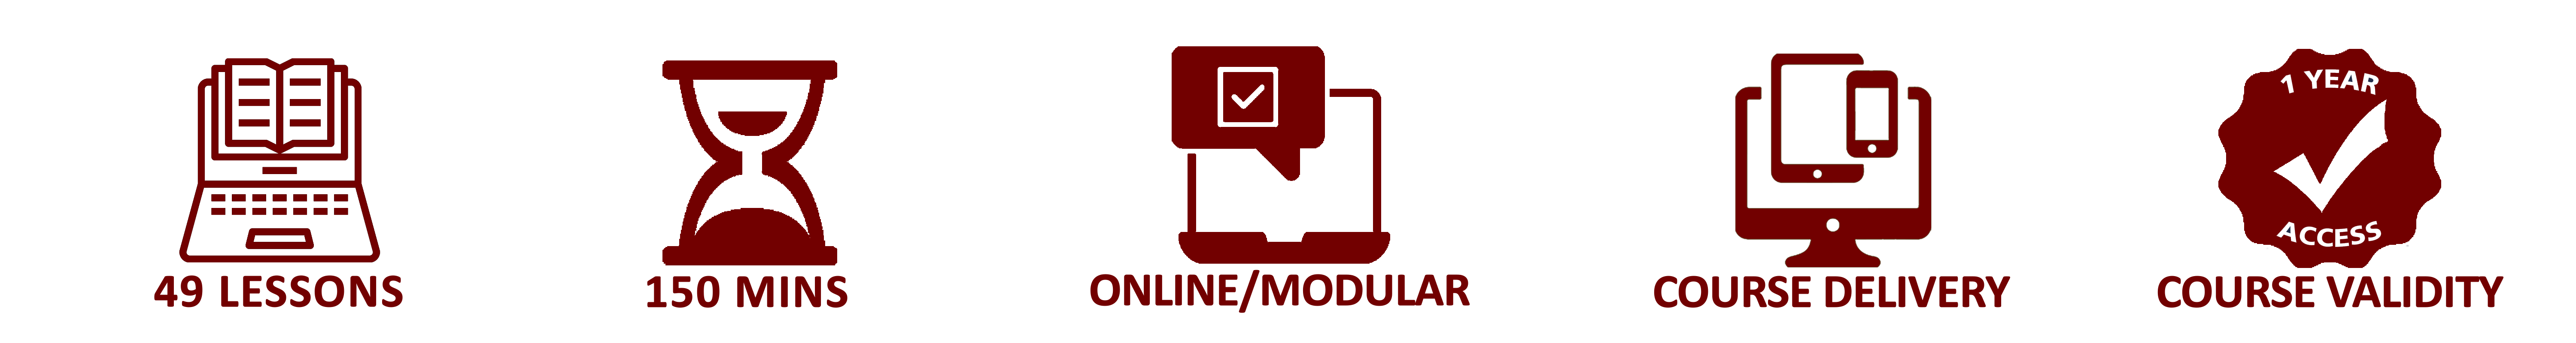 Sales Essentials - Online Training Package - Mandatory Compliance UK - Icons -